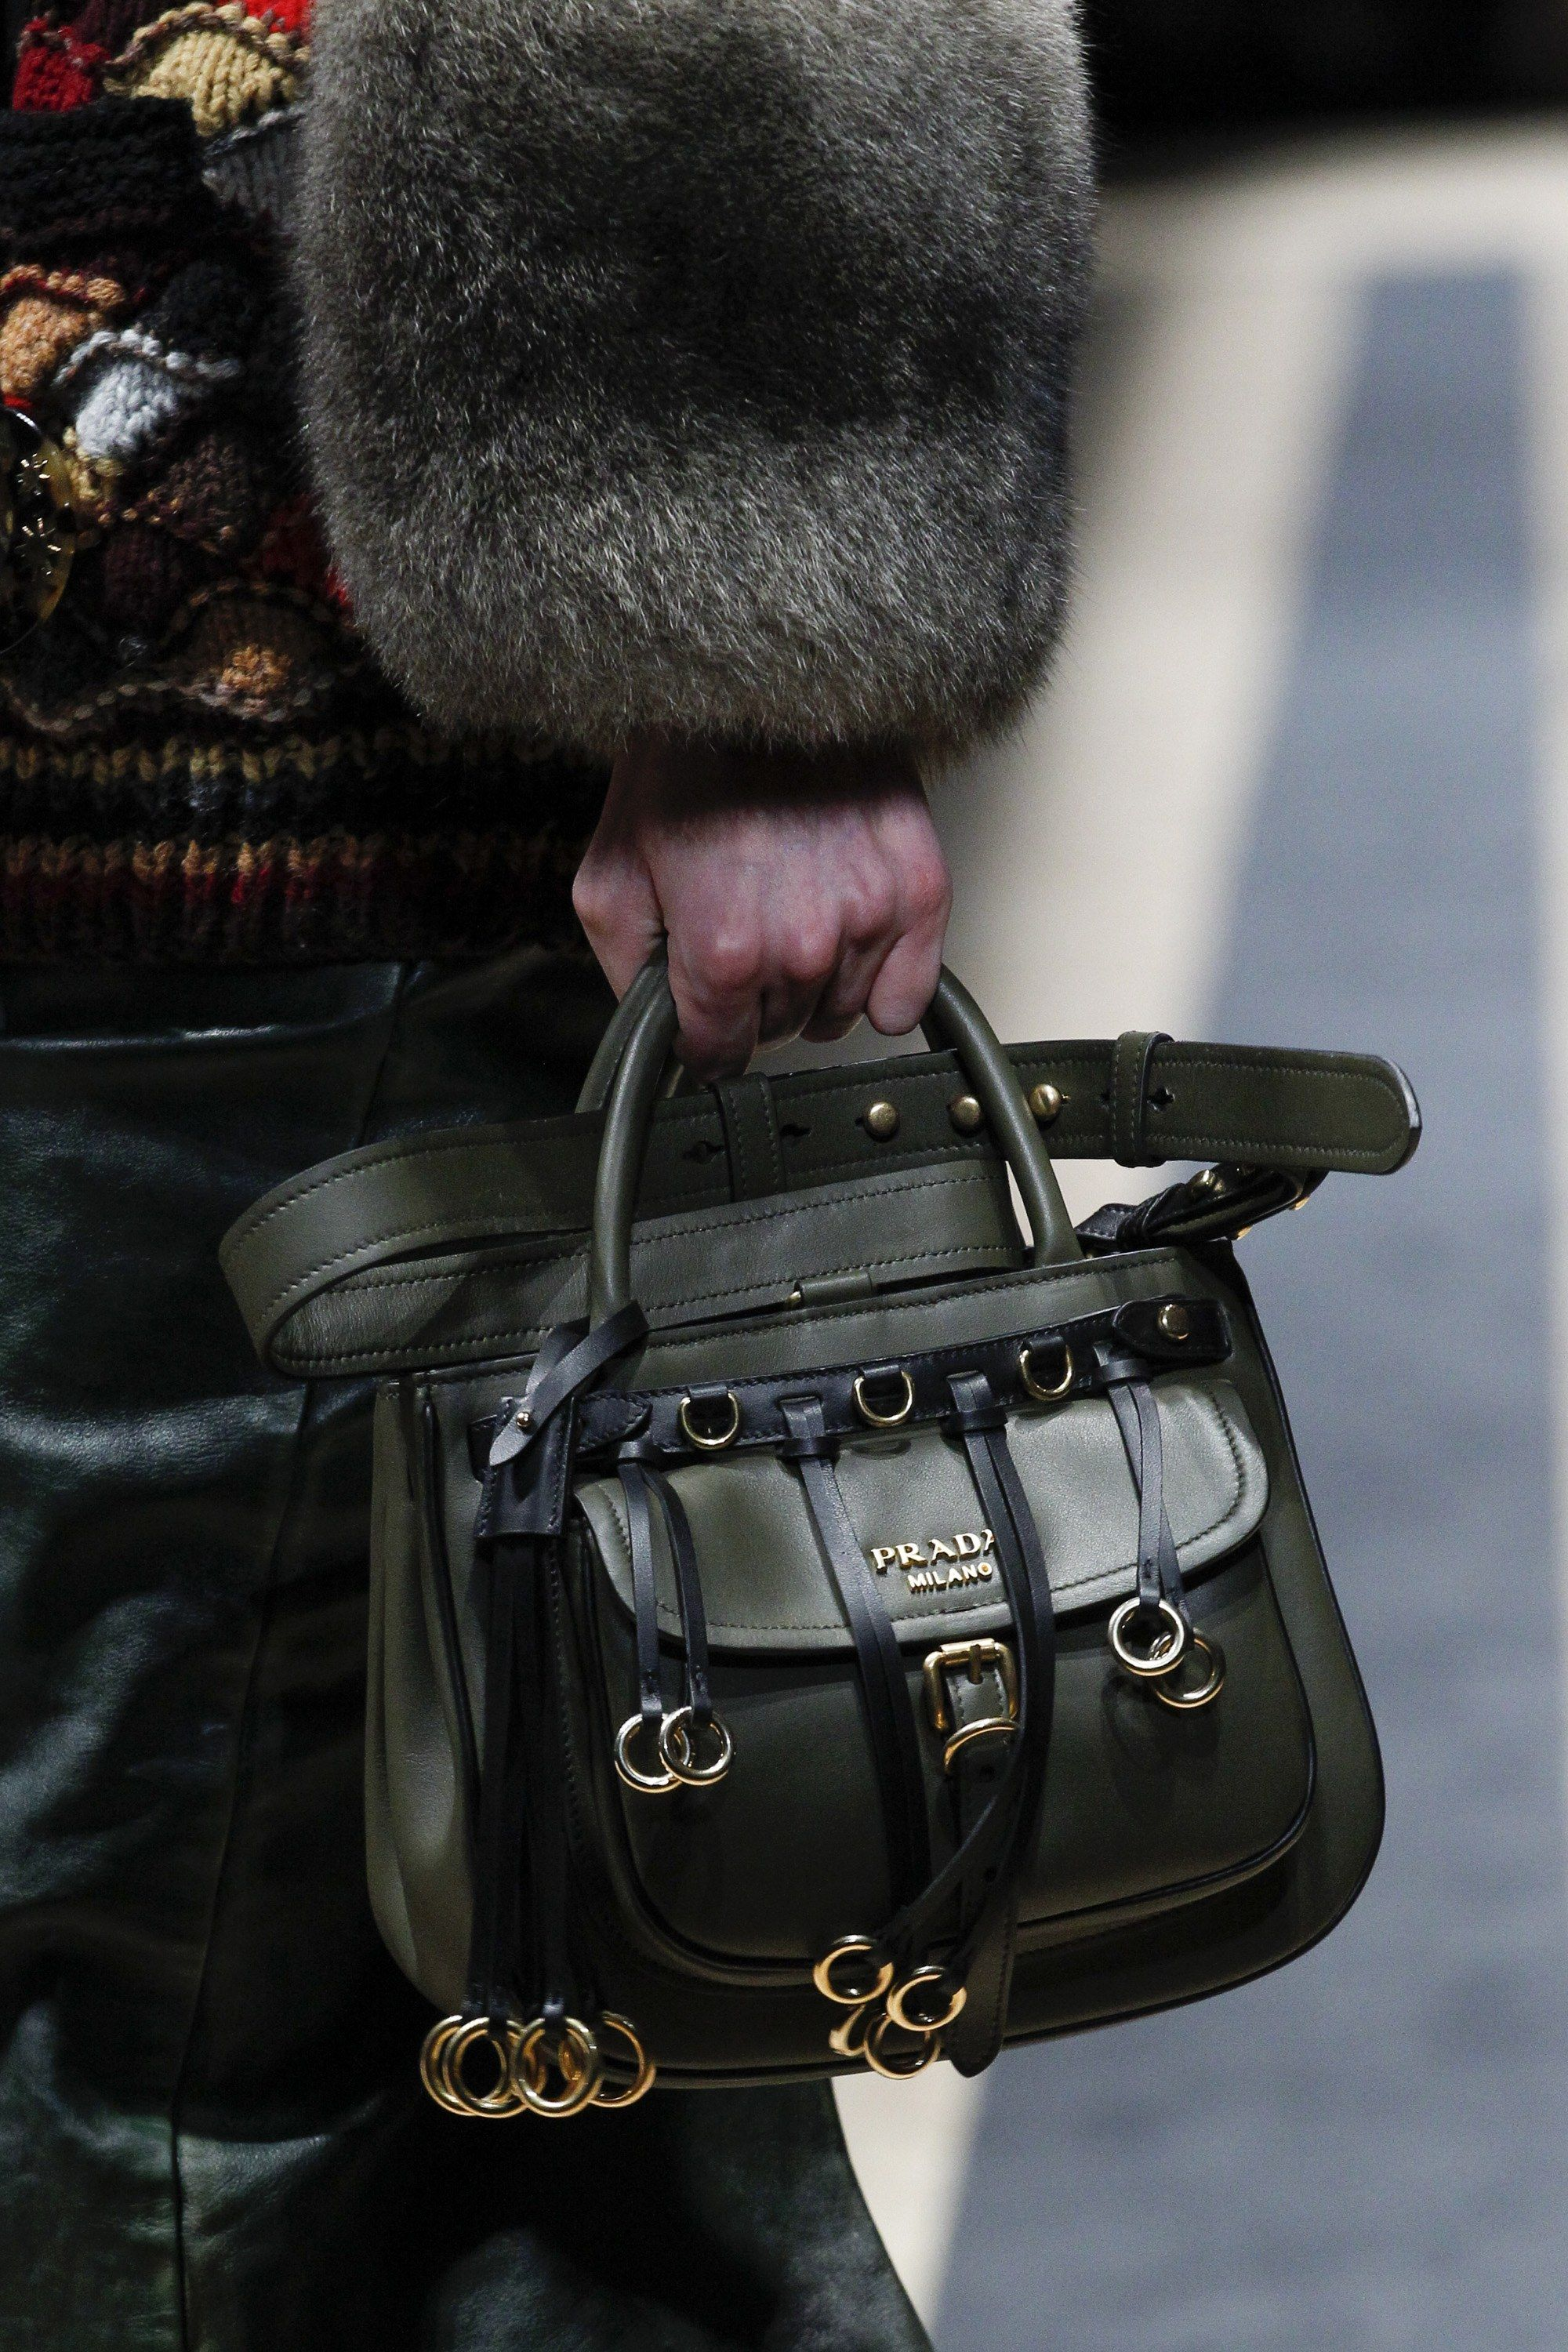 Prada FW 2013 | inspired by Prada FW 2013 collection